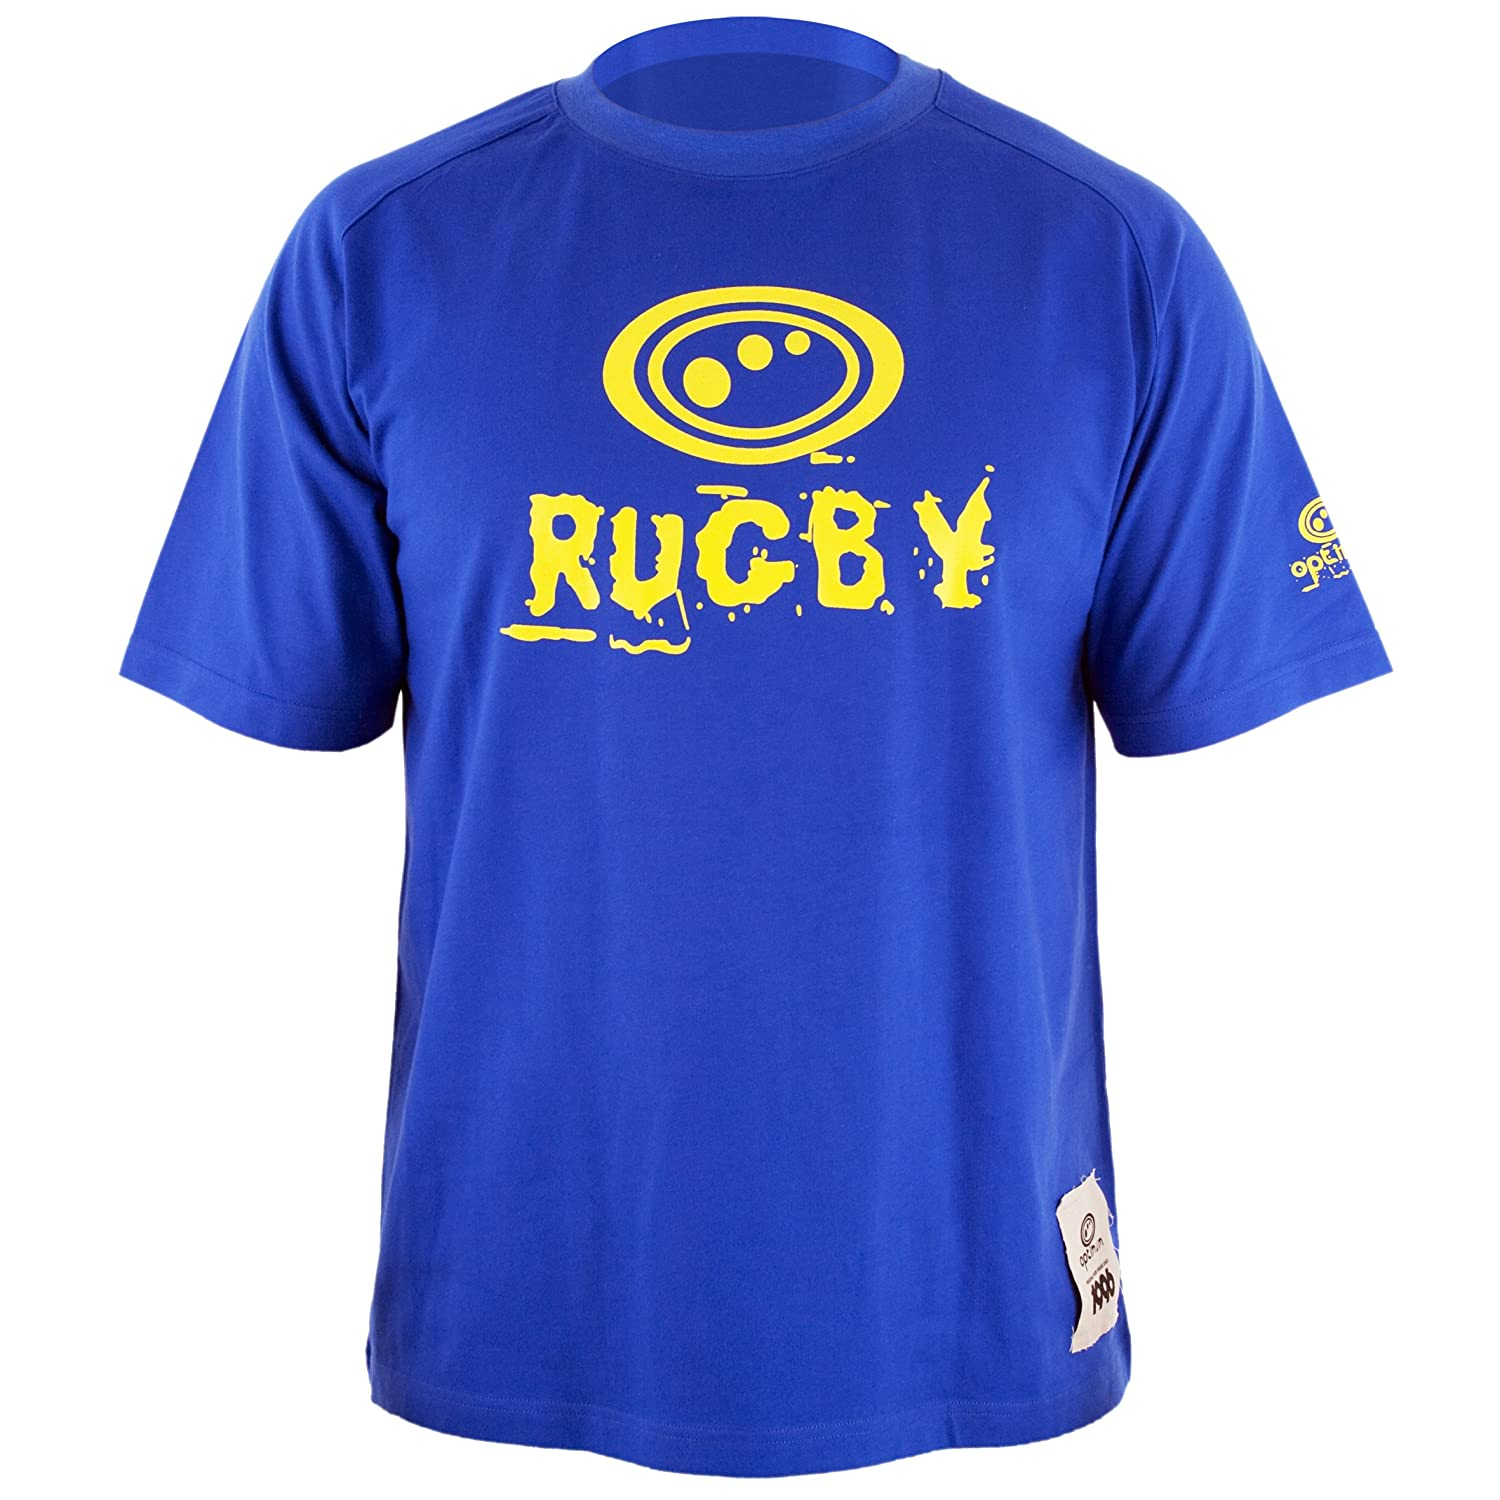 Optimum Boy's Rugby - Camiseta de rugby para niño tamaño Mini color azul/amarillo ORTRYMINI